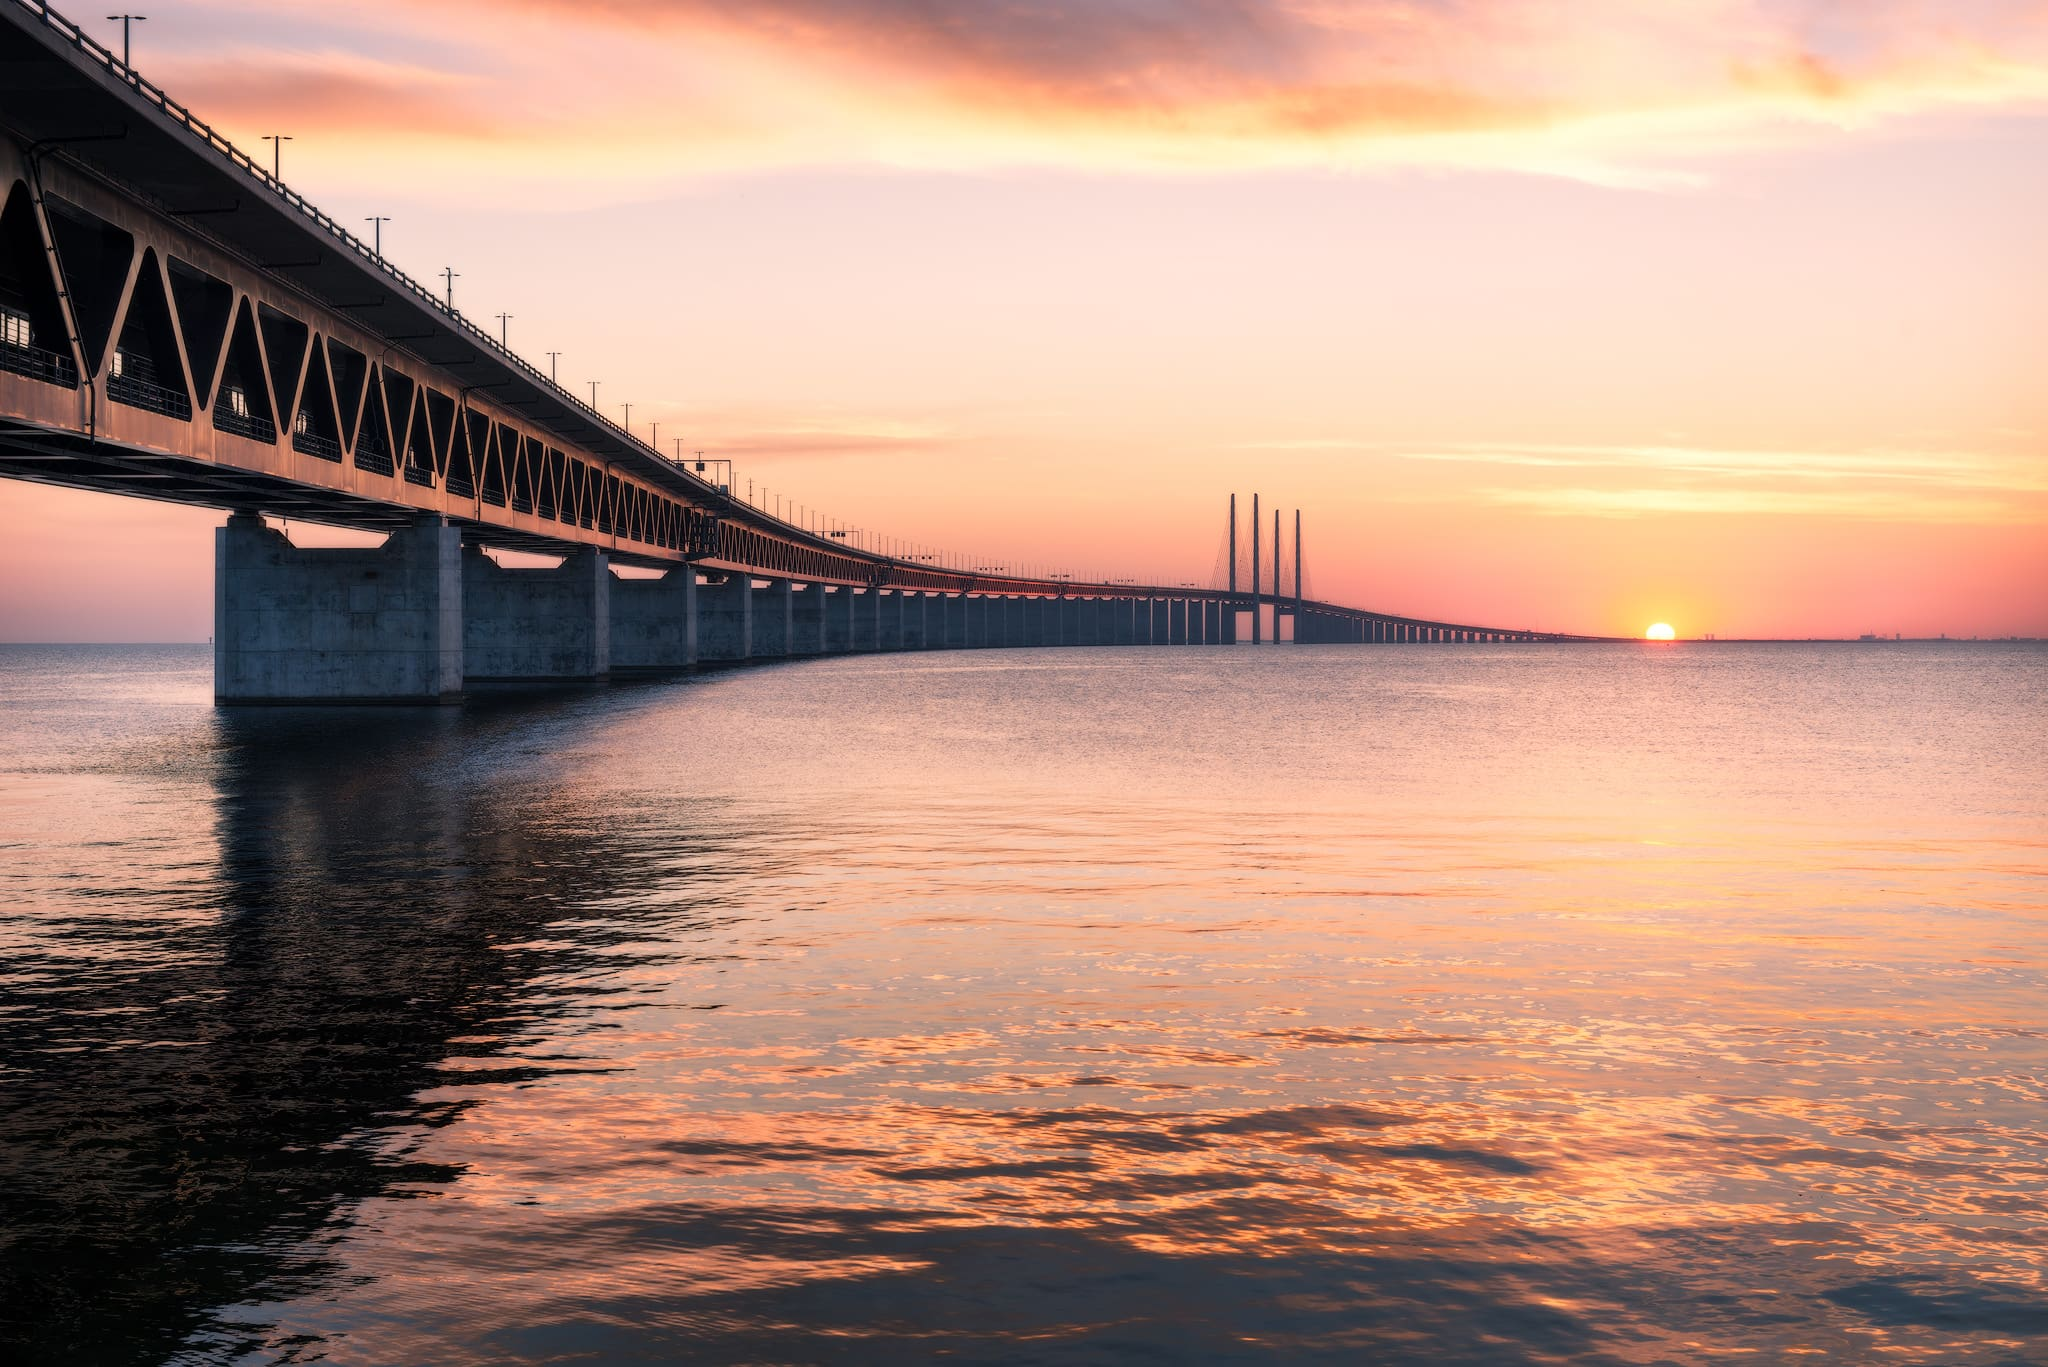 The Öresund Bridge connecting Copenhagen in Denmark and Malmö in Sweden